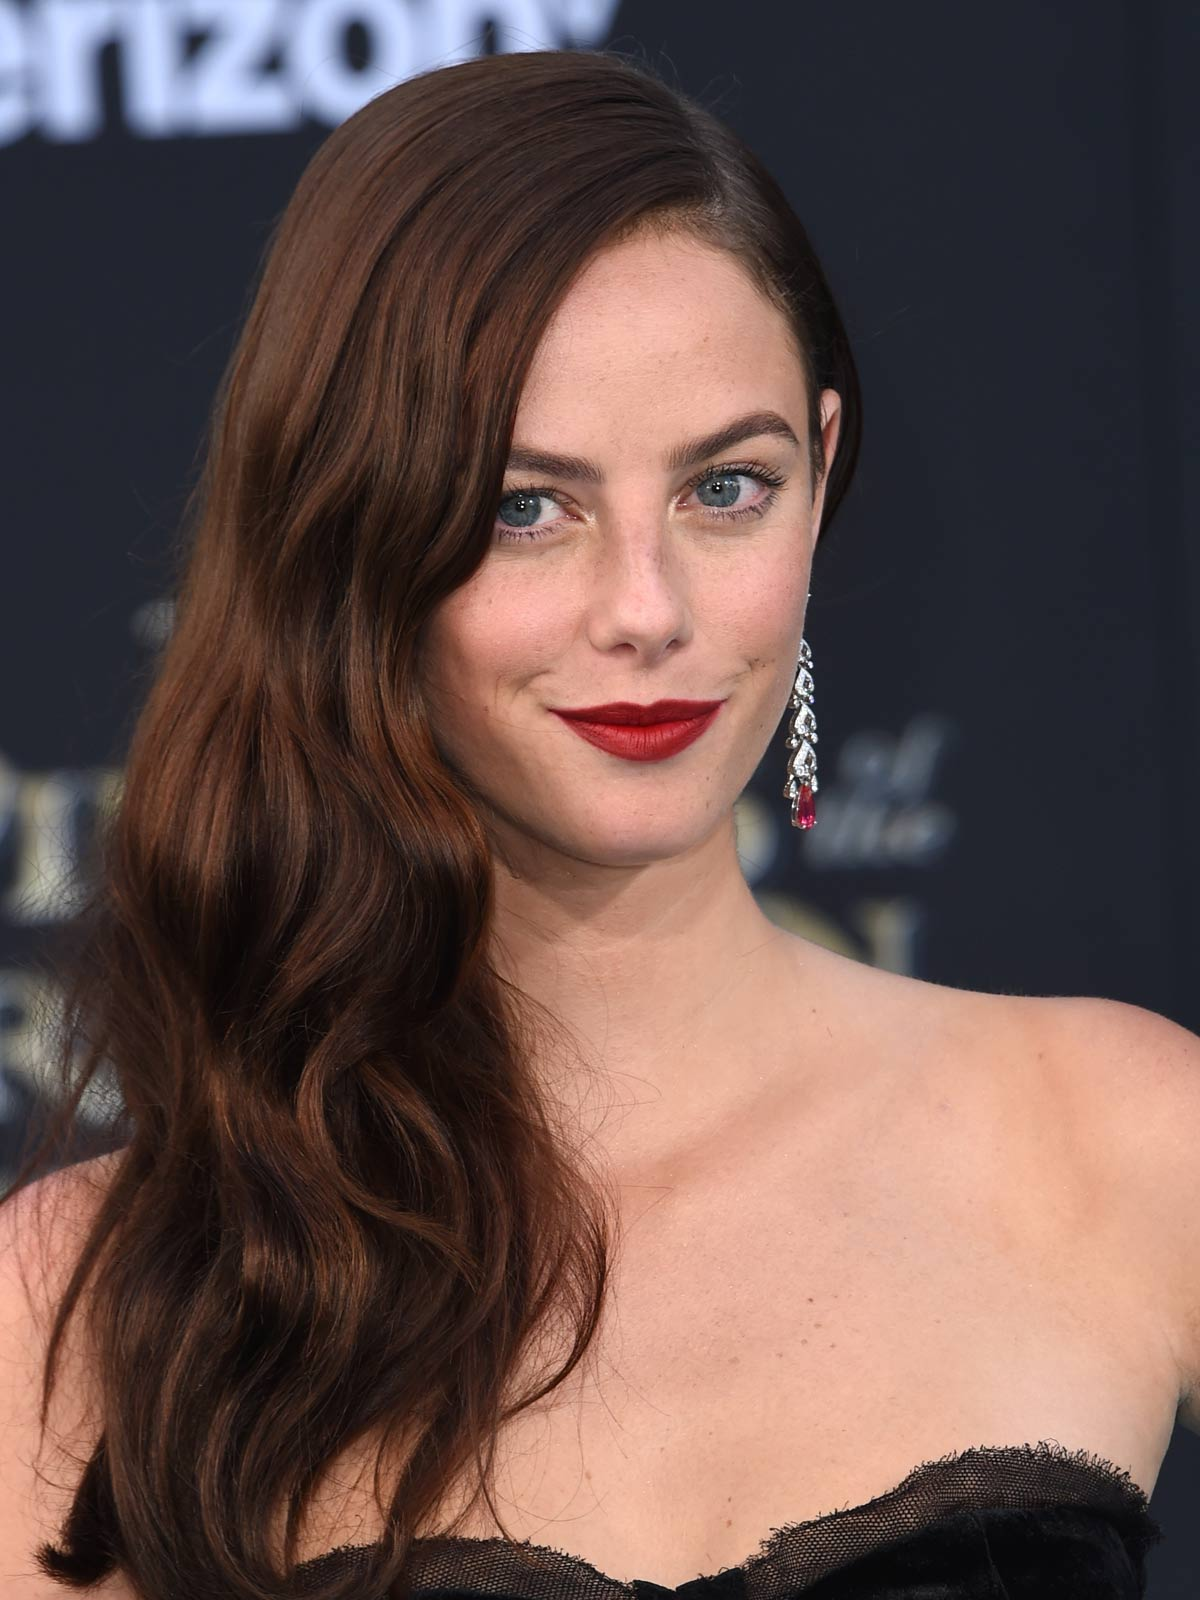 Kaya Scodelario nudes (72 photos), hot Feet, YouTube, braless 2019